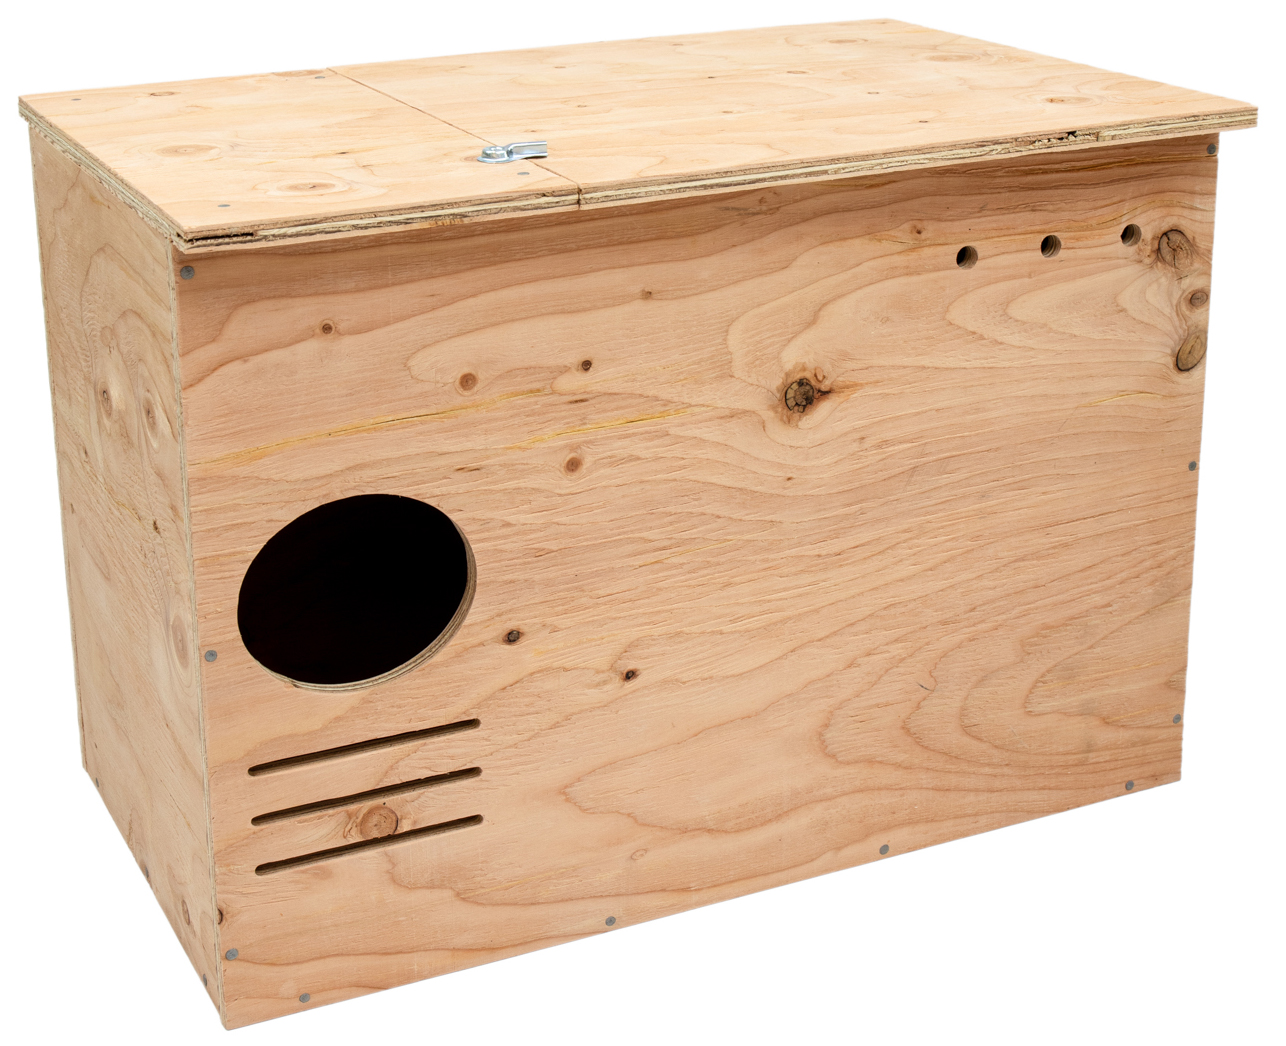 The Owl Abode owl box kit